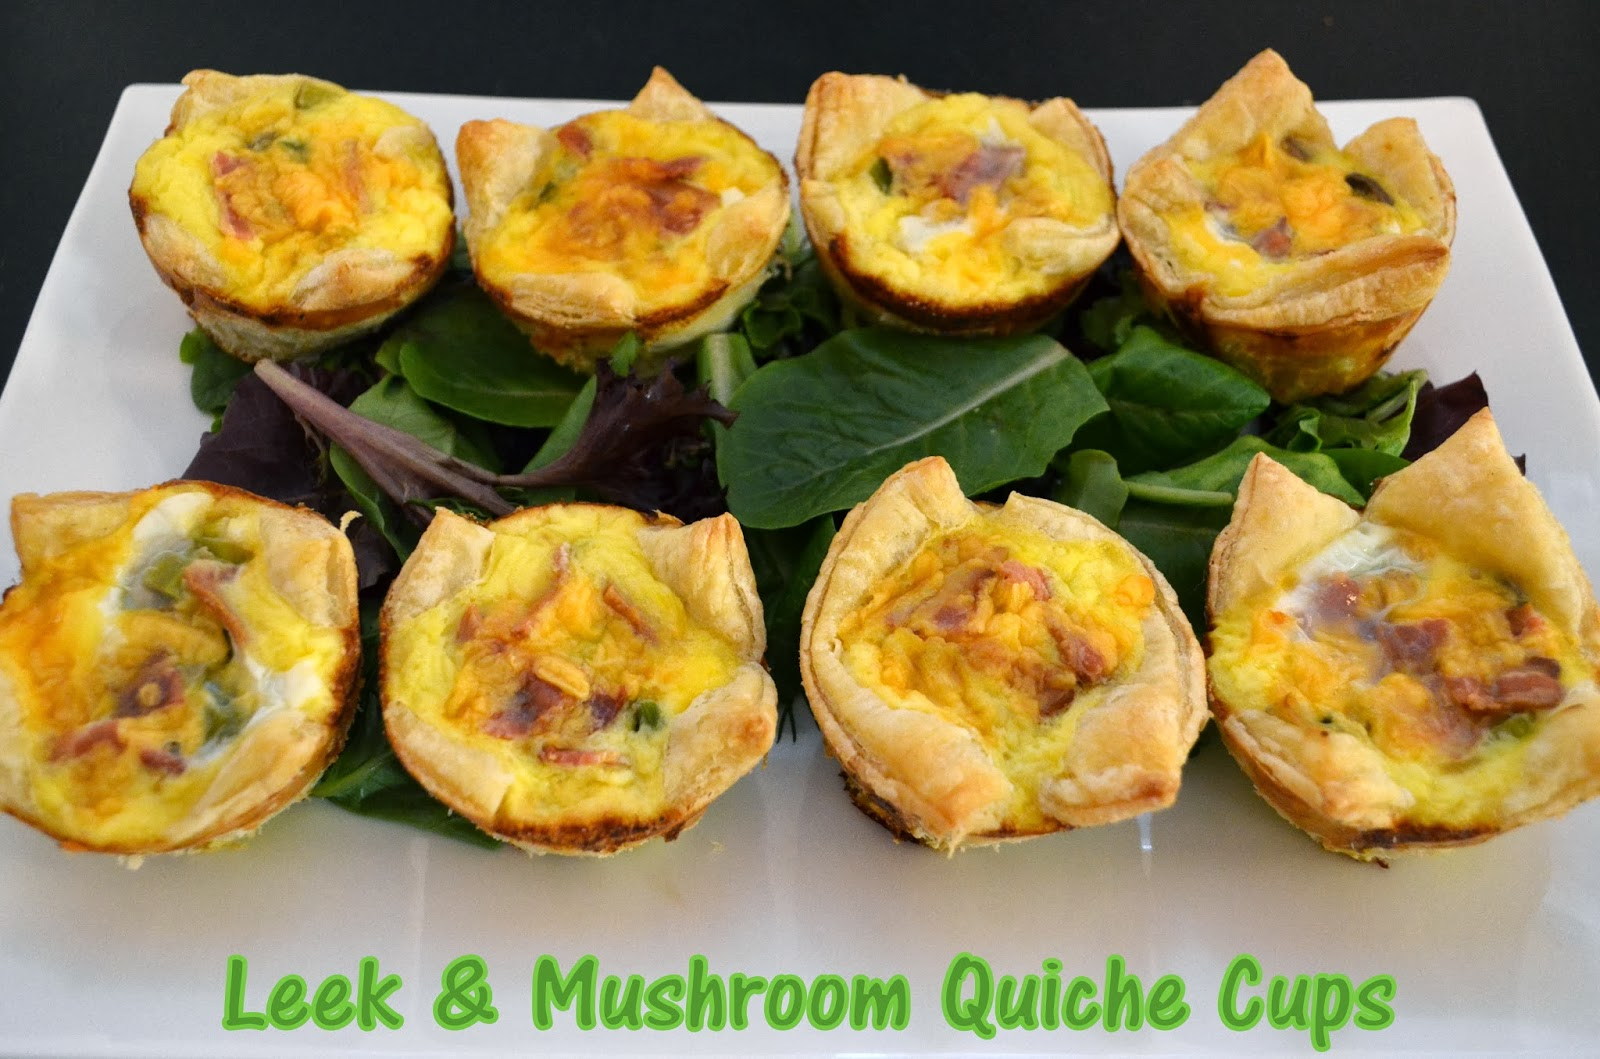 Flavors by Four: Leek and Mushroom Quiche Cups